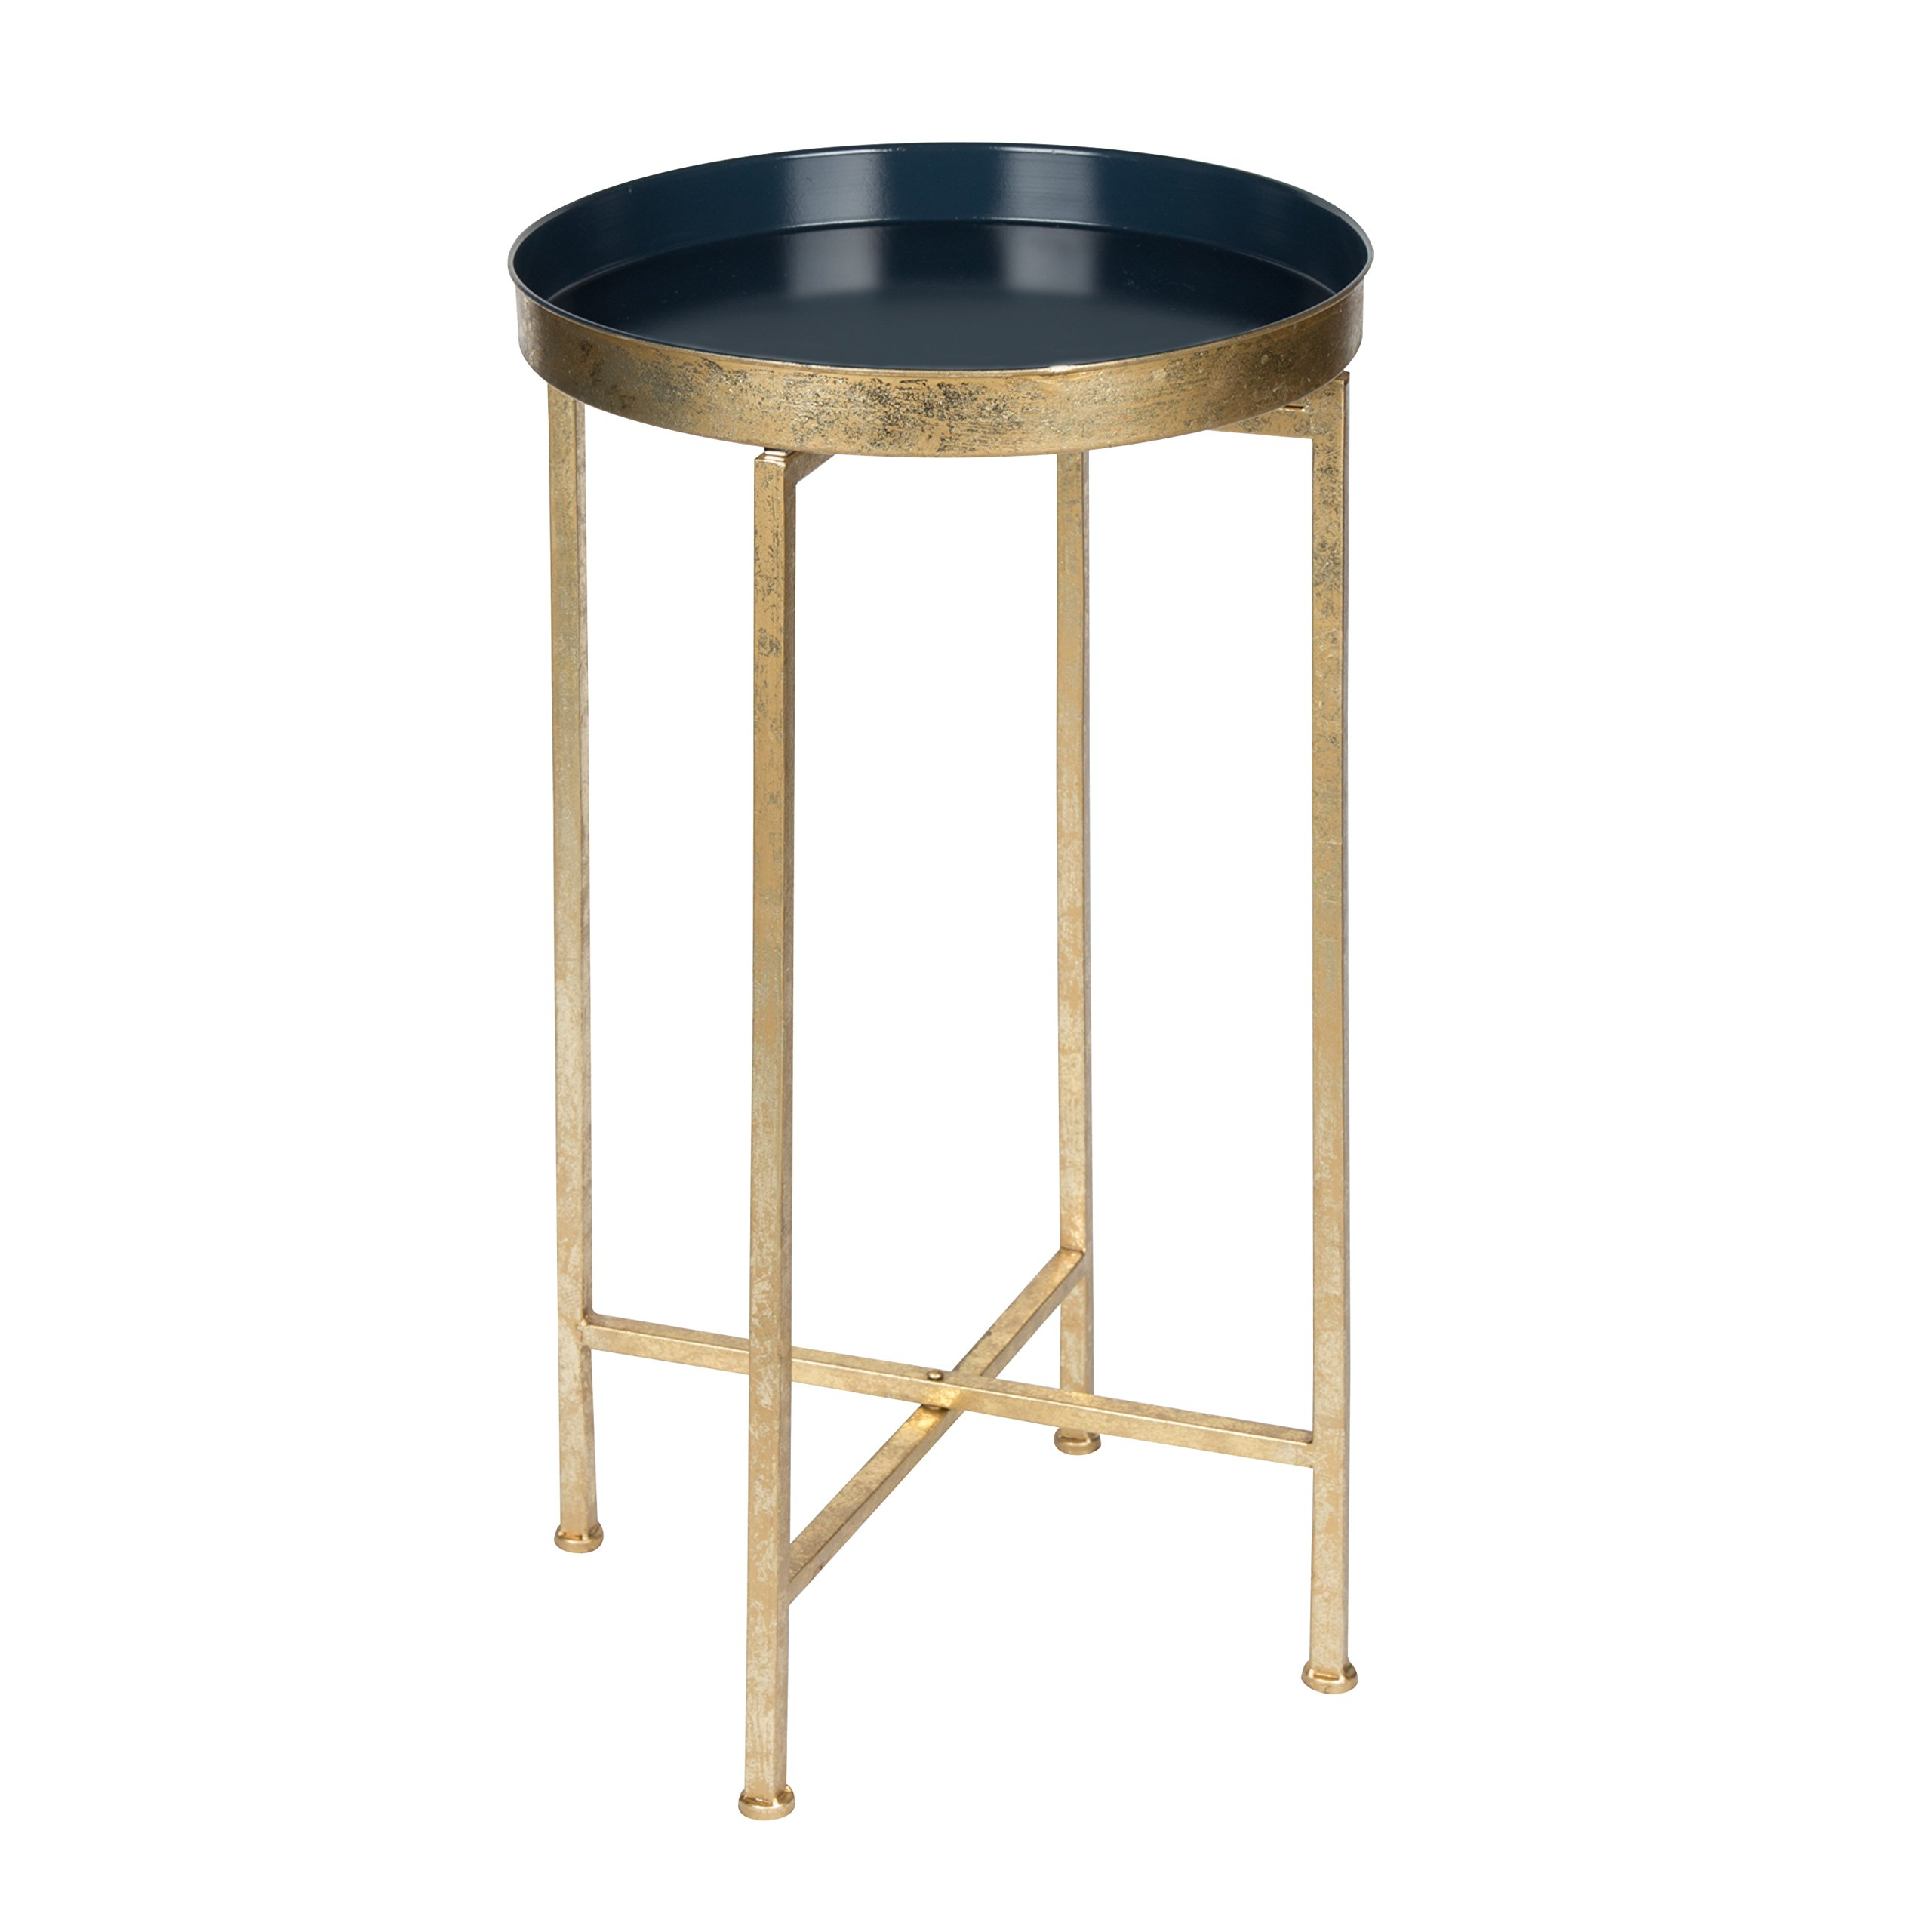 Kate and Laurel Celia Round Metal Foldable Tray Accent Table, Navy Blue and Gold